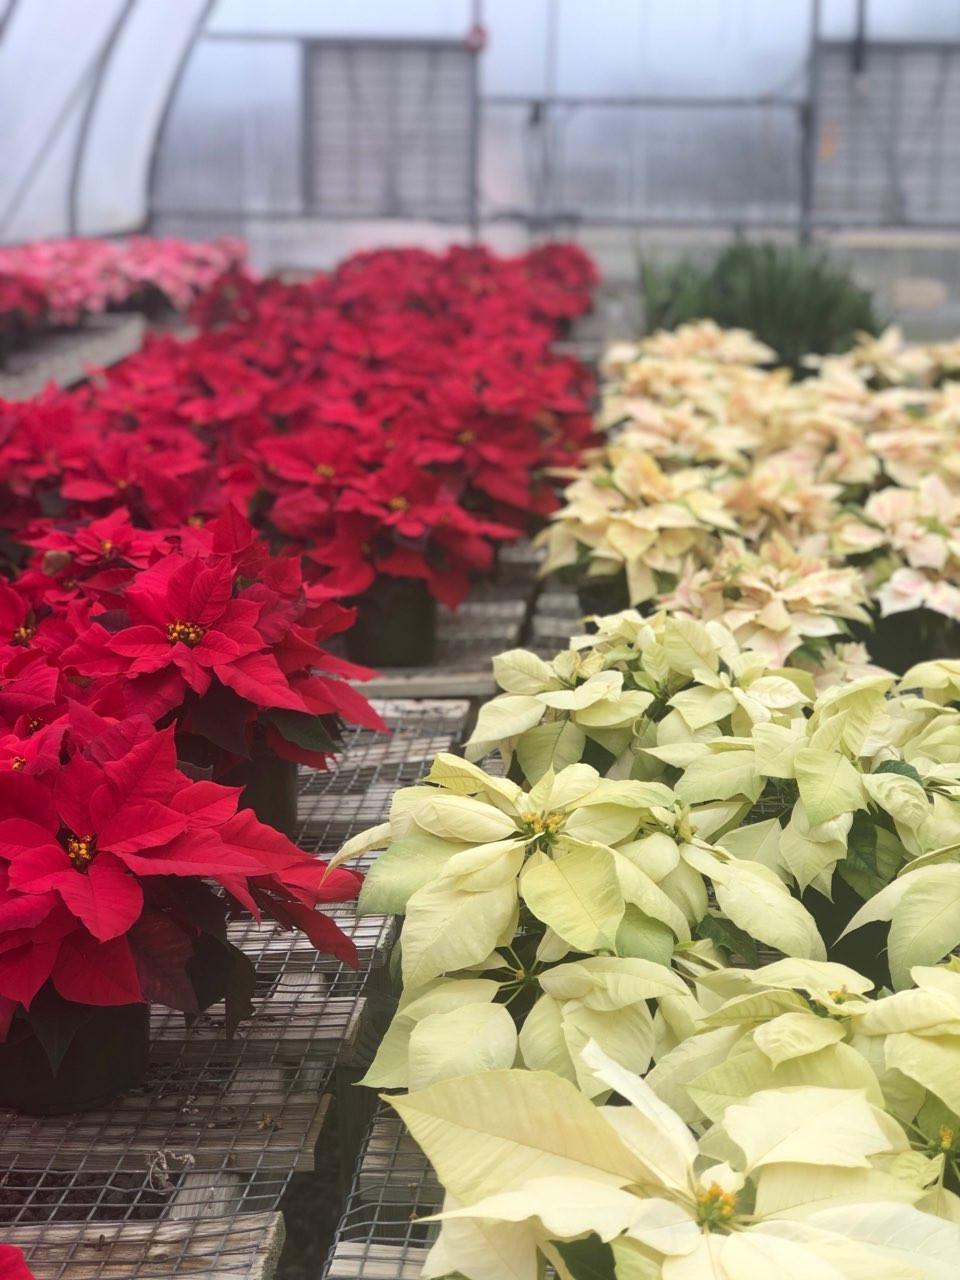 Red and gold poinsettias sold and grown by West High's agricultural classes.